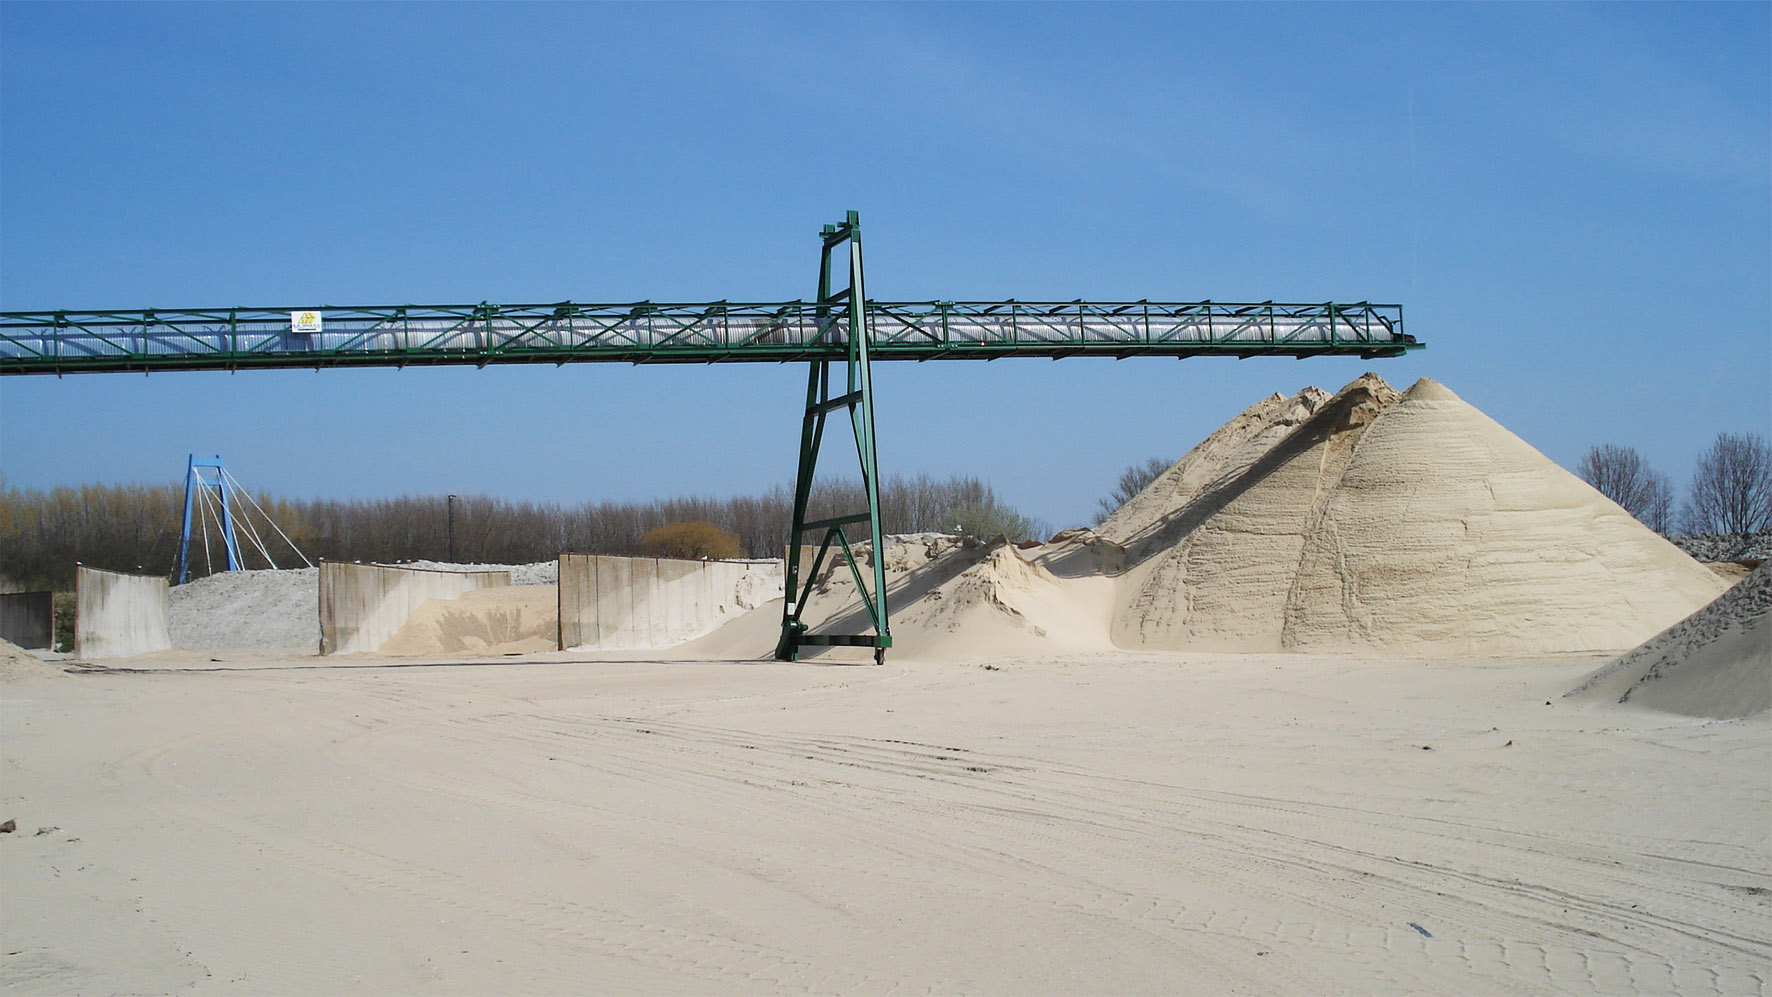 Belt Conveyor for sand & gravel